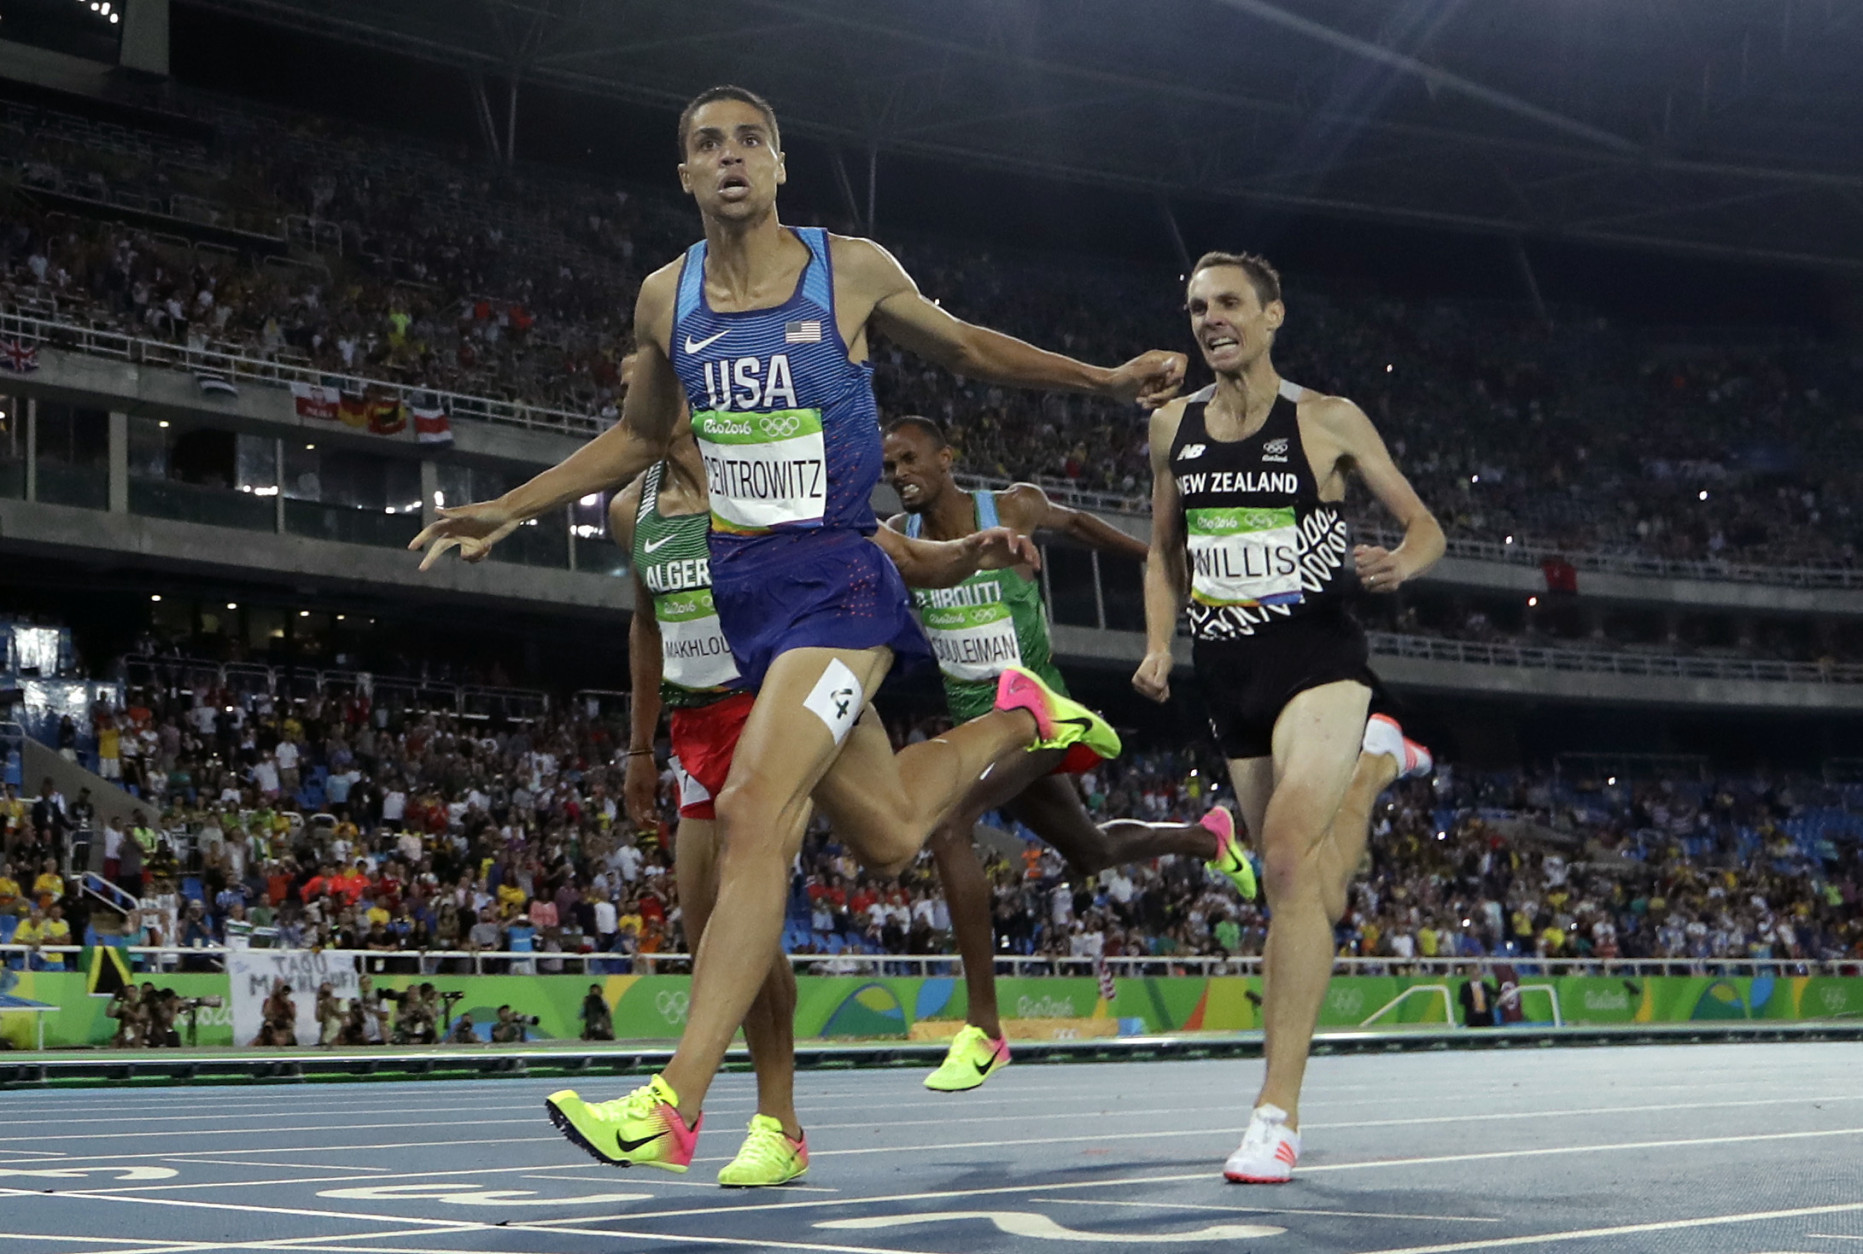 United States' Matthew Centrowitz crosses the line to win gold in the men's 1500-meter final during the athletics competitions of the 2016 Summer Olympics at the Olympic stadium in Rio de Janeiro, Brazil, Saturday, Aug. 20, 2016. (AP Photo/Matt Slocum)